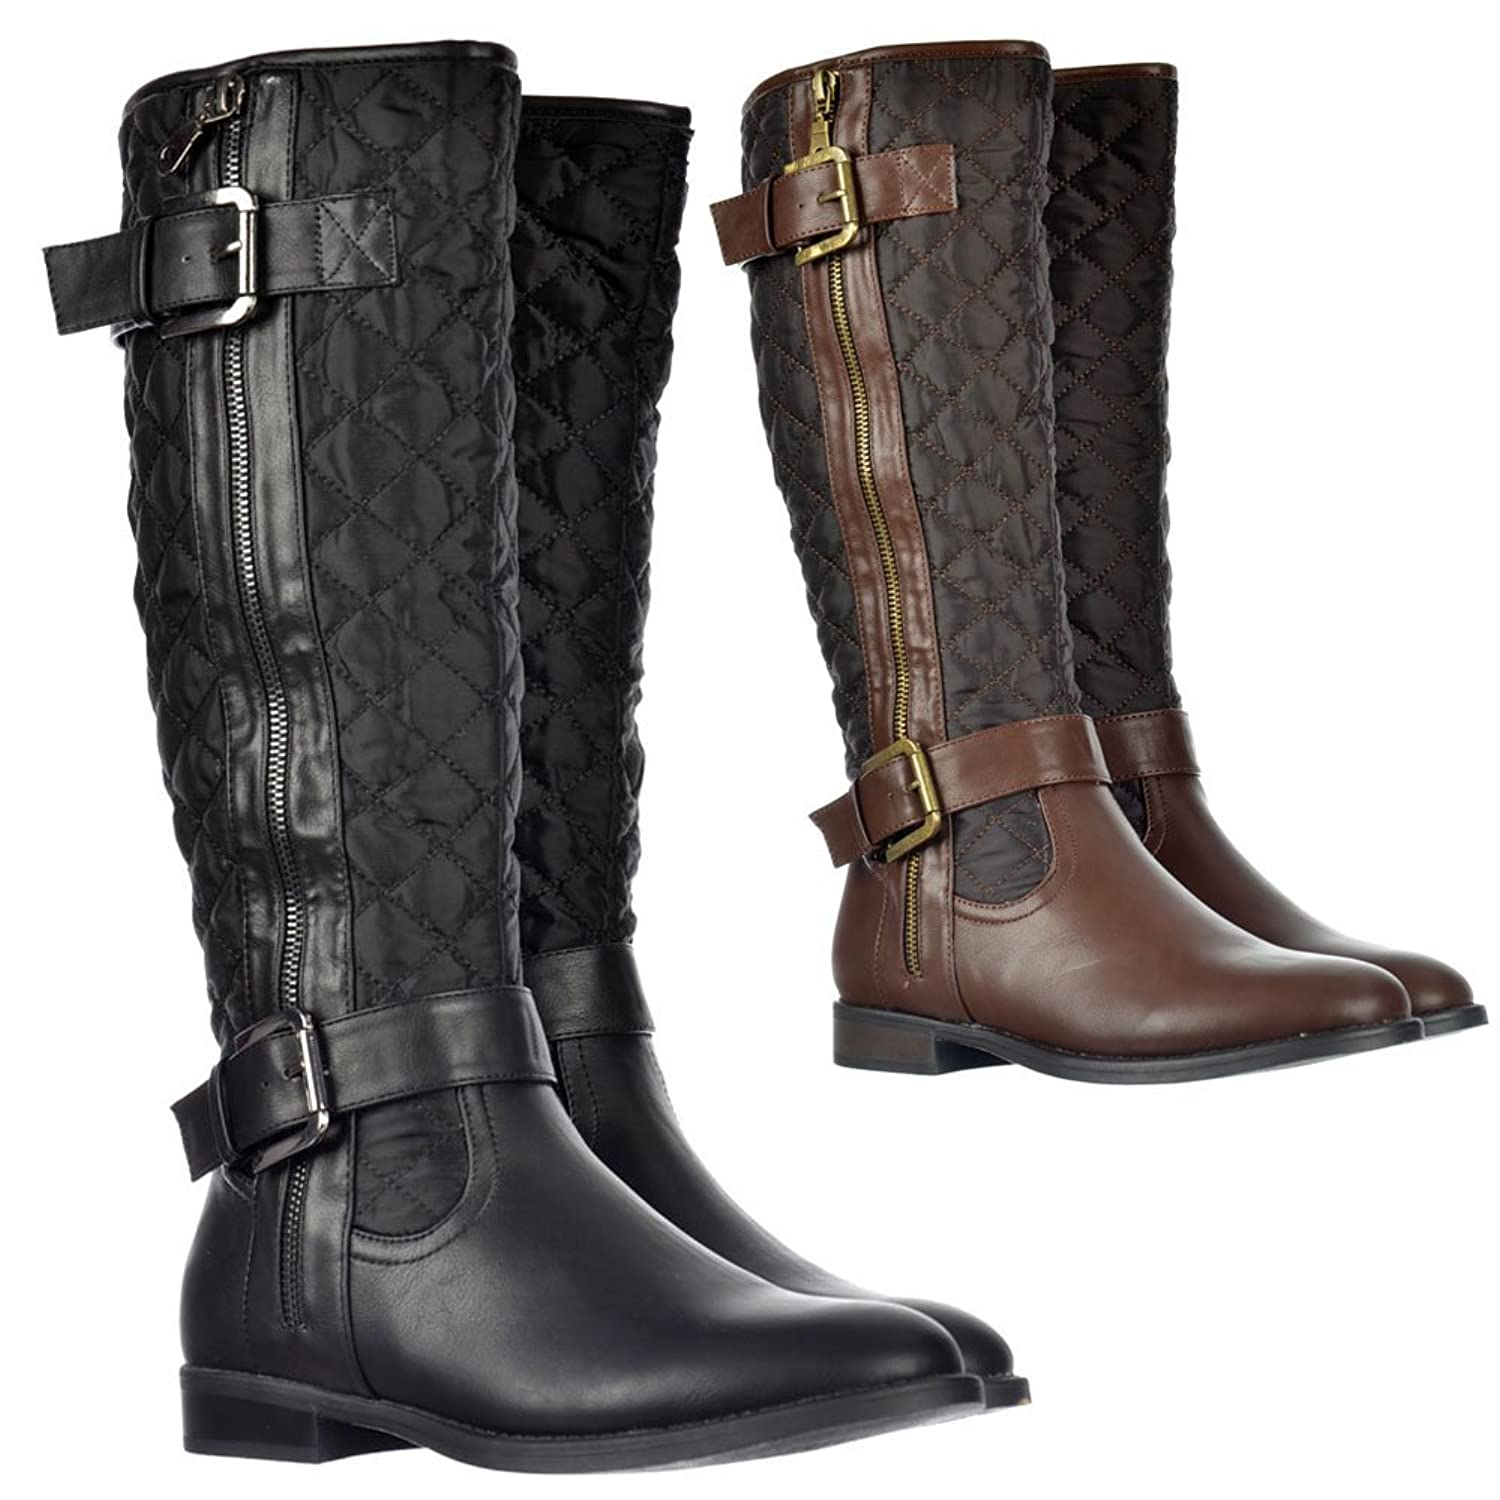 Black Quilted Boots - Boots Price & Reviews 2017 : brown quilted riding boots - Adamdwight.com